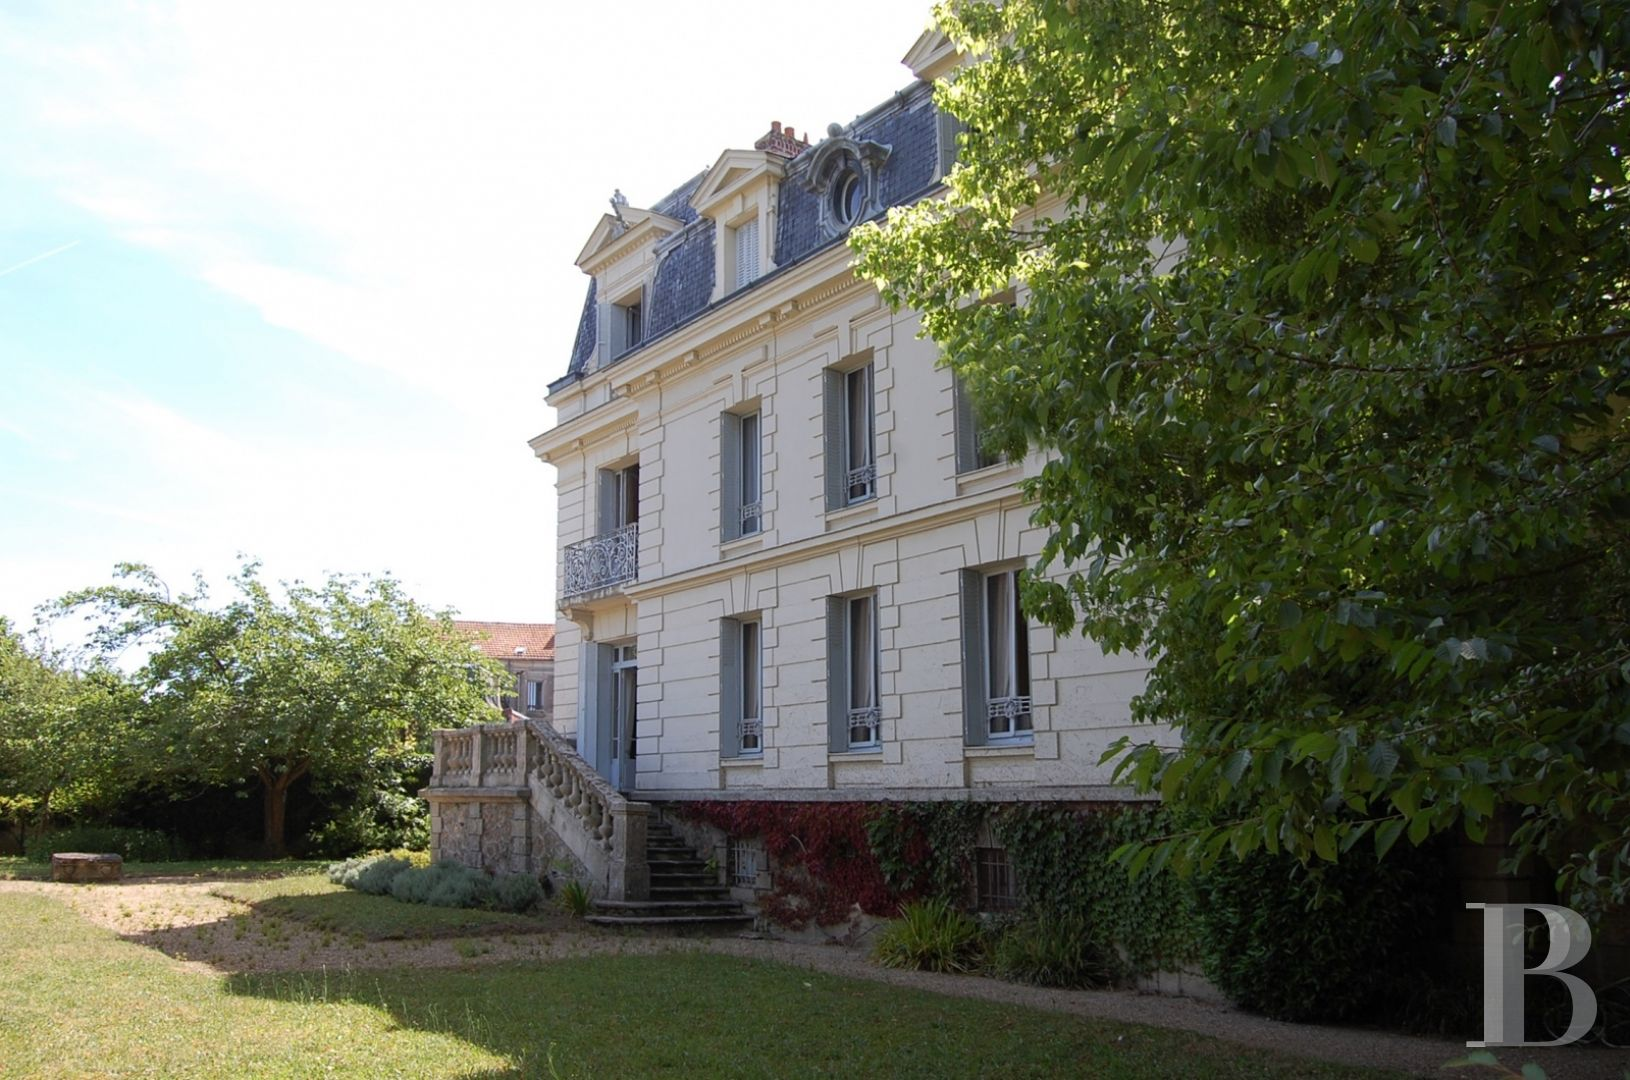 France mansions for sale ile de france marne ferte - 4 zoom